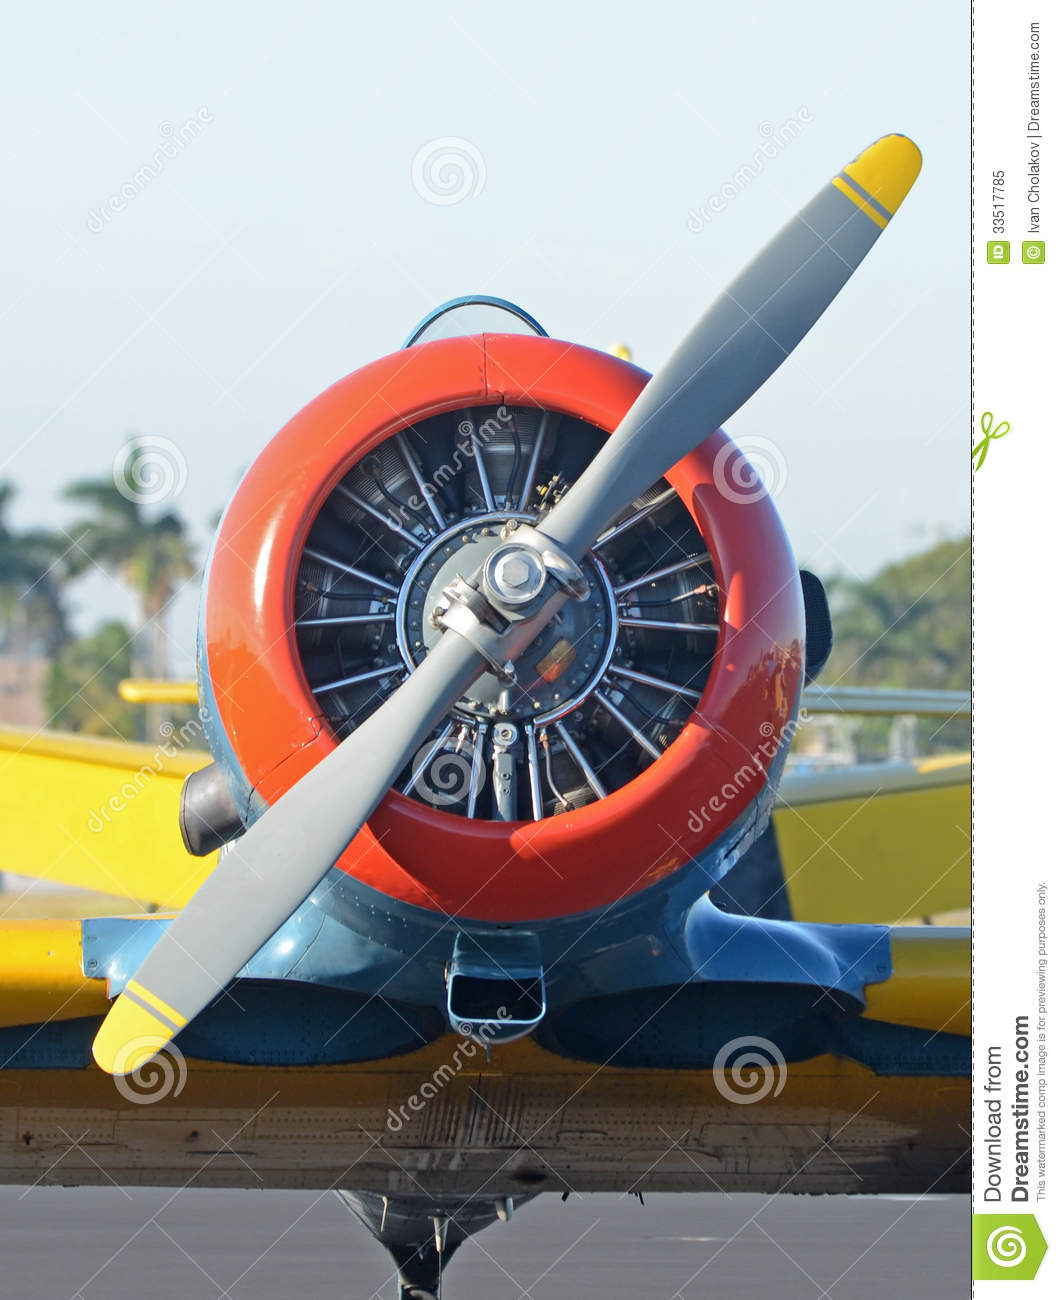 Old propeller airplane stock image. Image of front ...